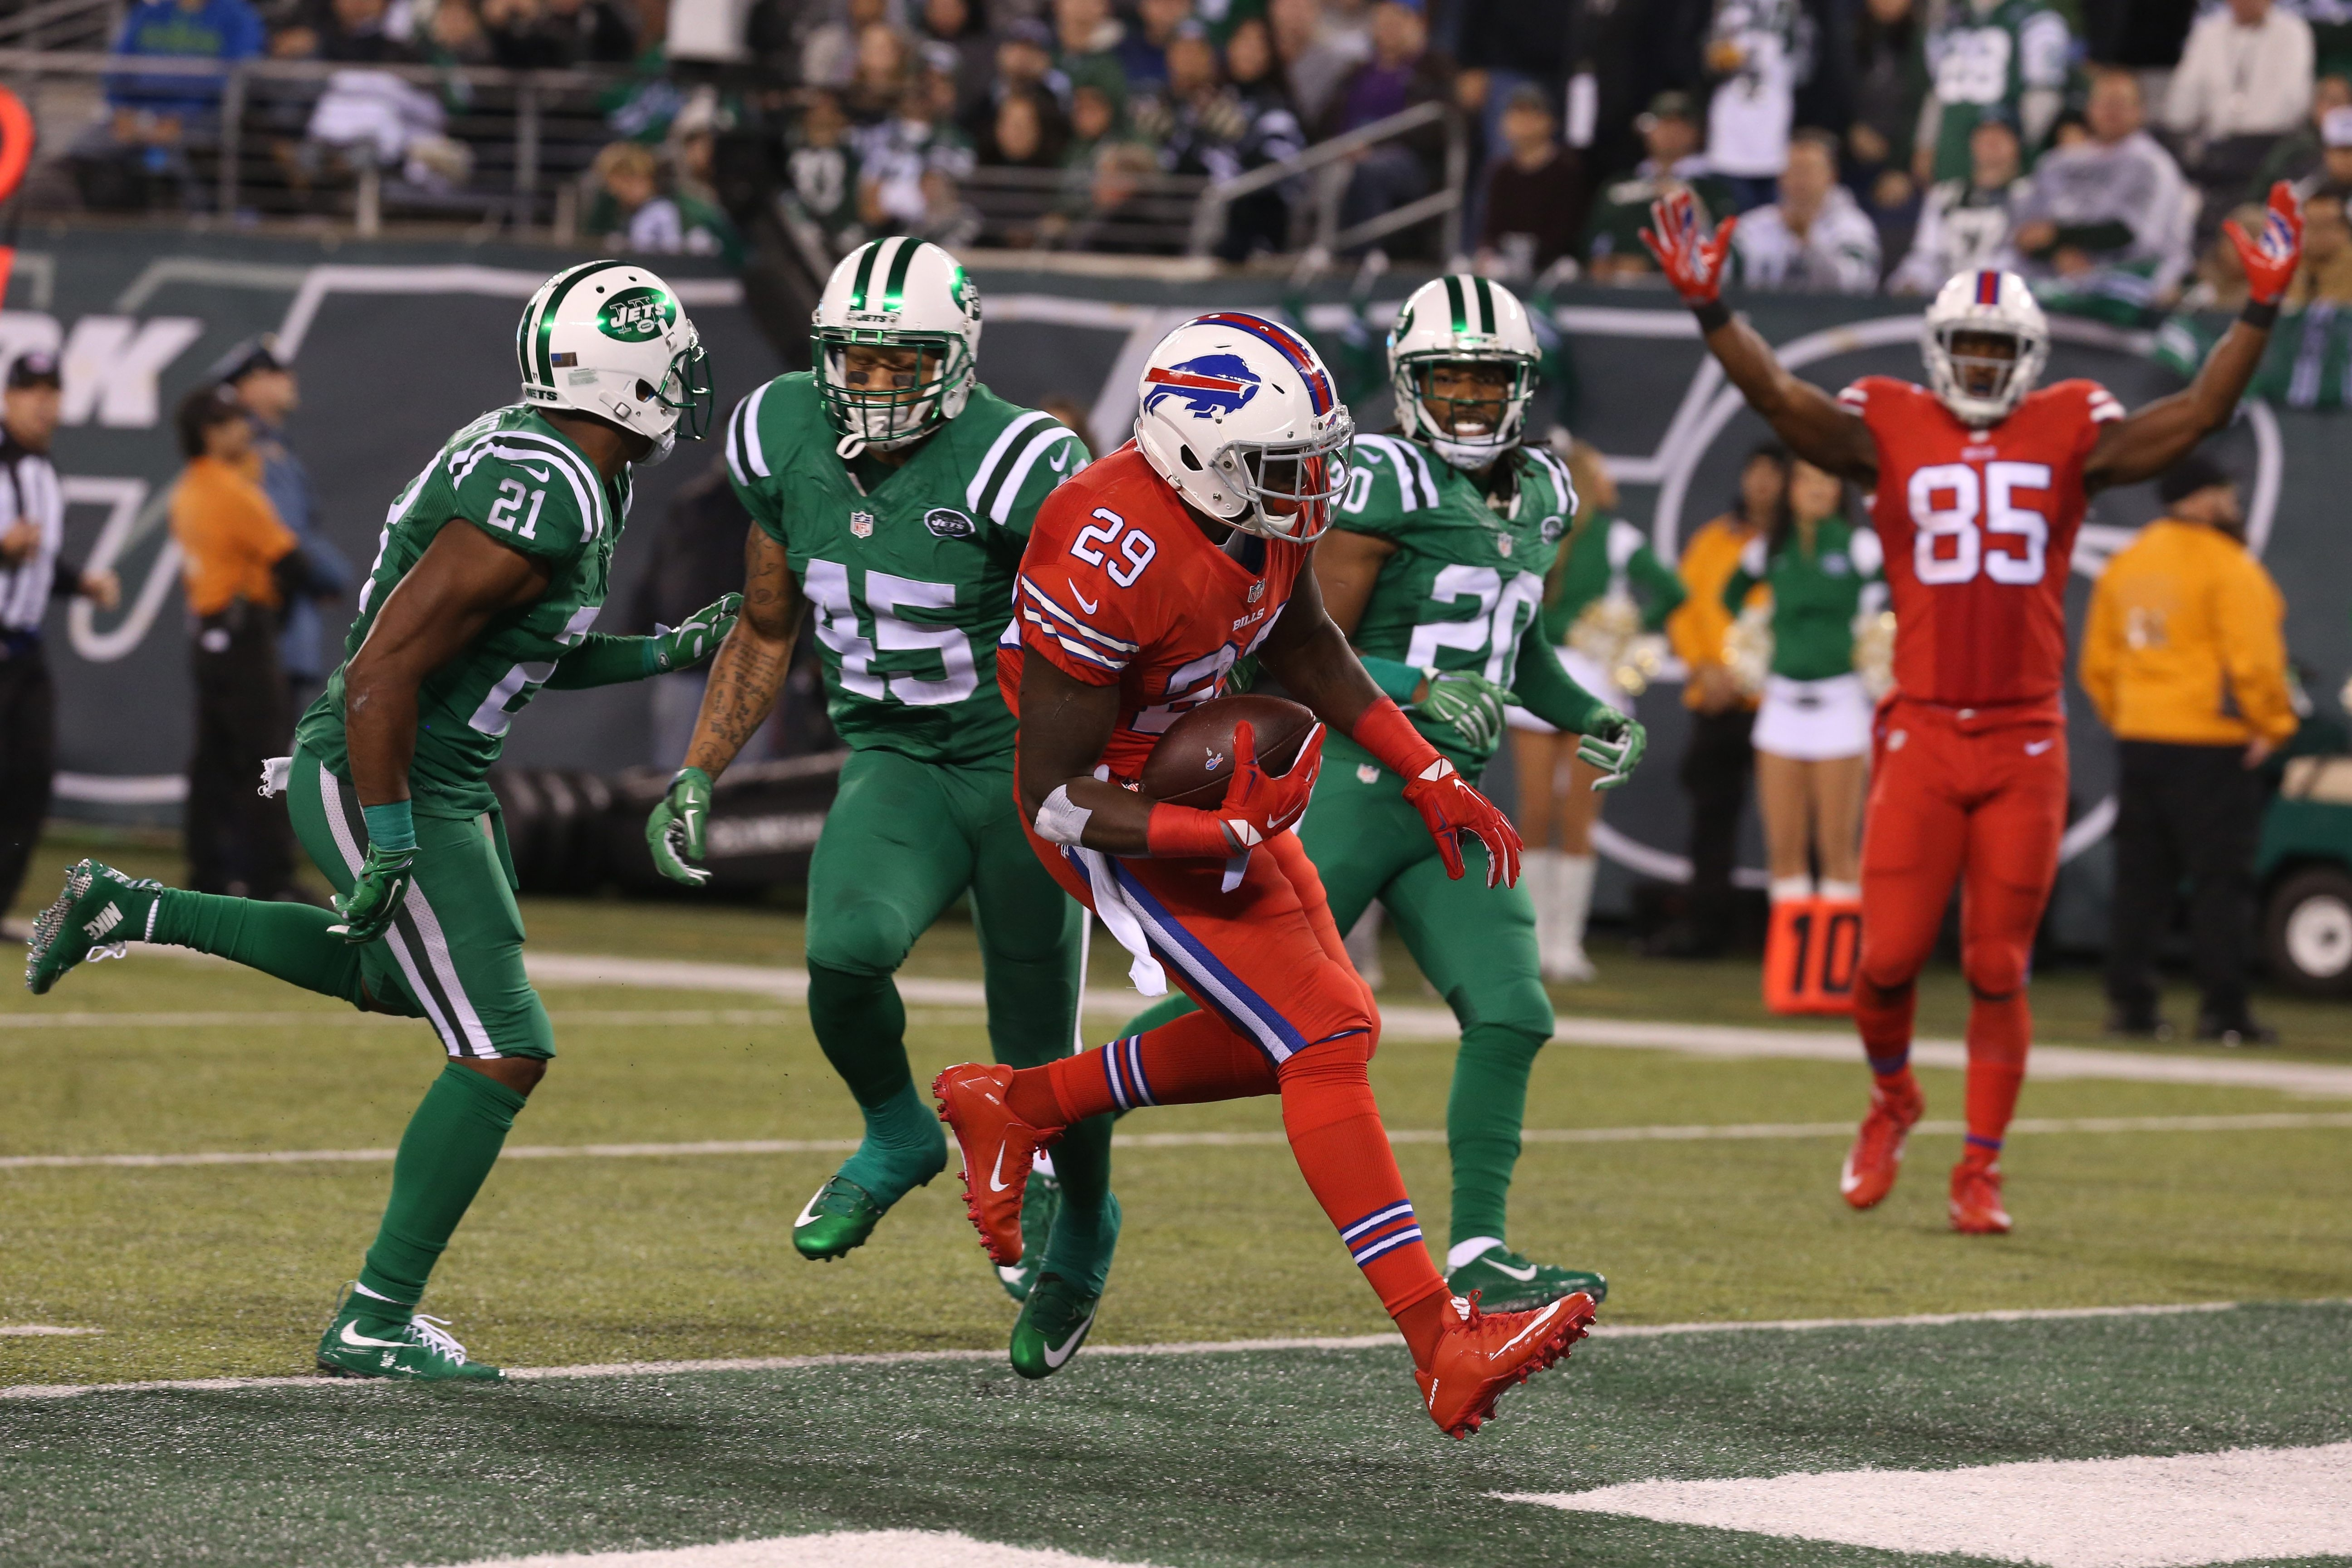 The Bills' Karlos Williams scores a touchdown during the third quarter at MetLife Stadium in Buffalo's 22-17 win over the Jets in November.